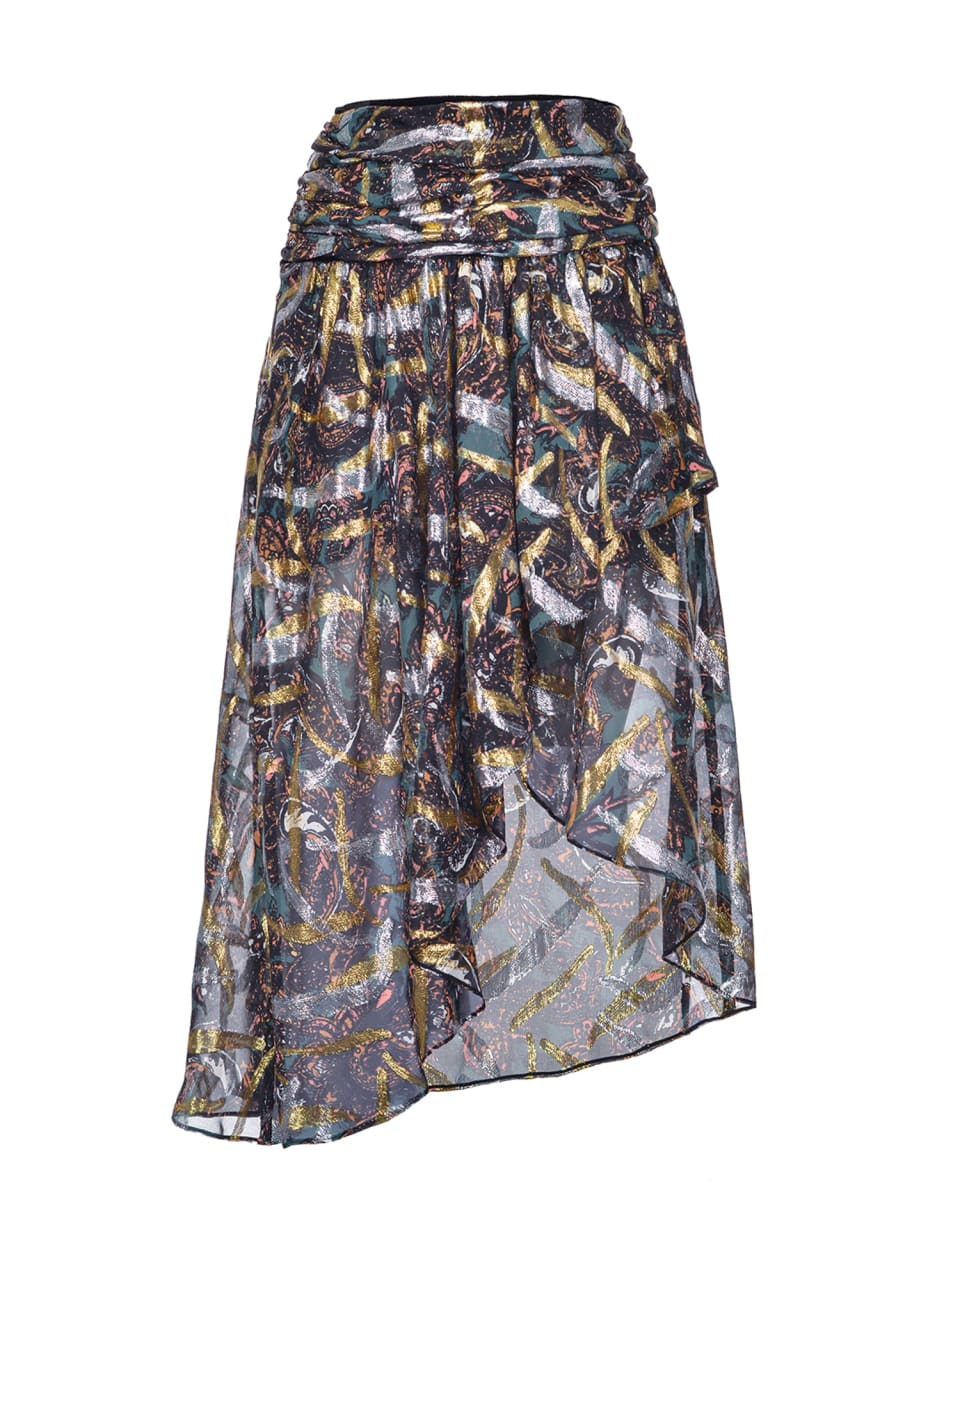 Midi-length skirt in cashmere-print fil coupé - Pinko